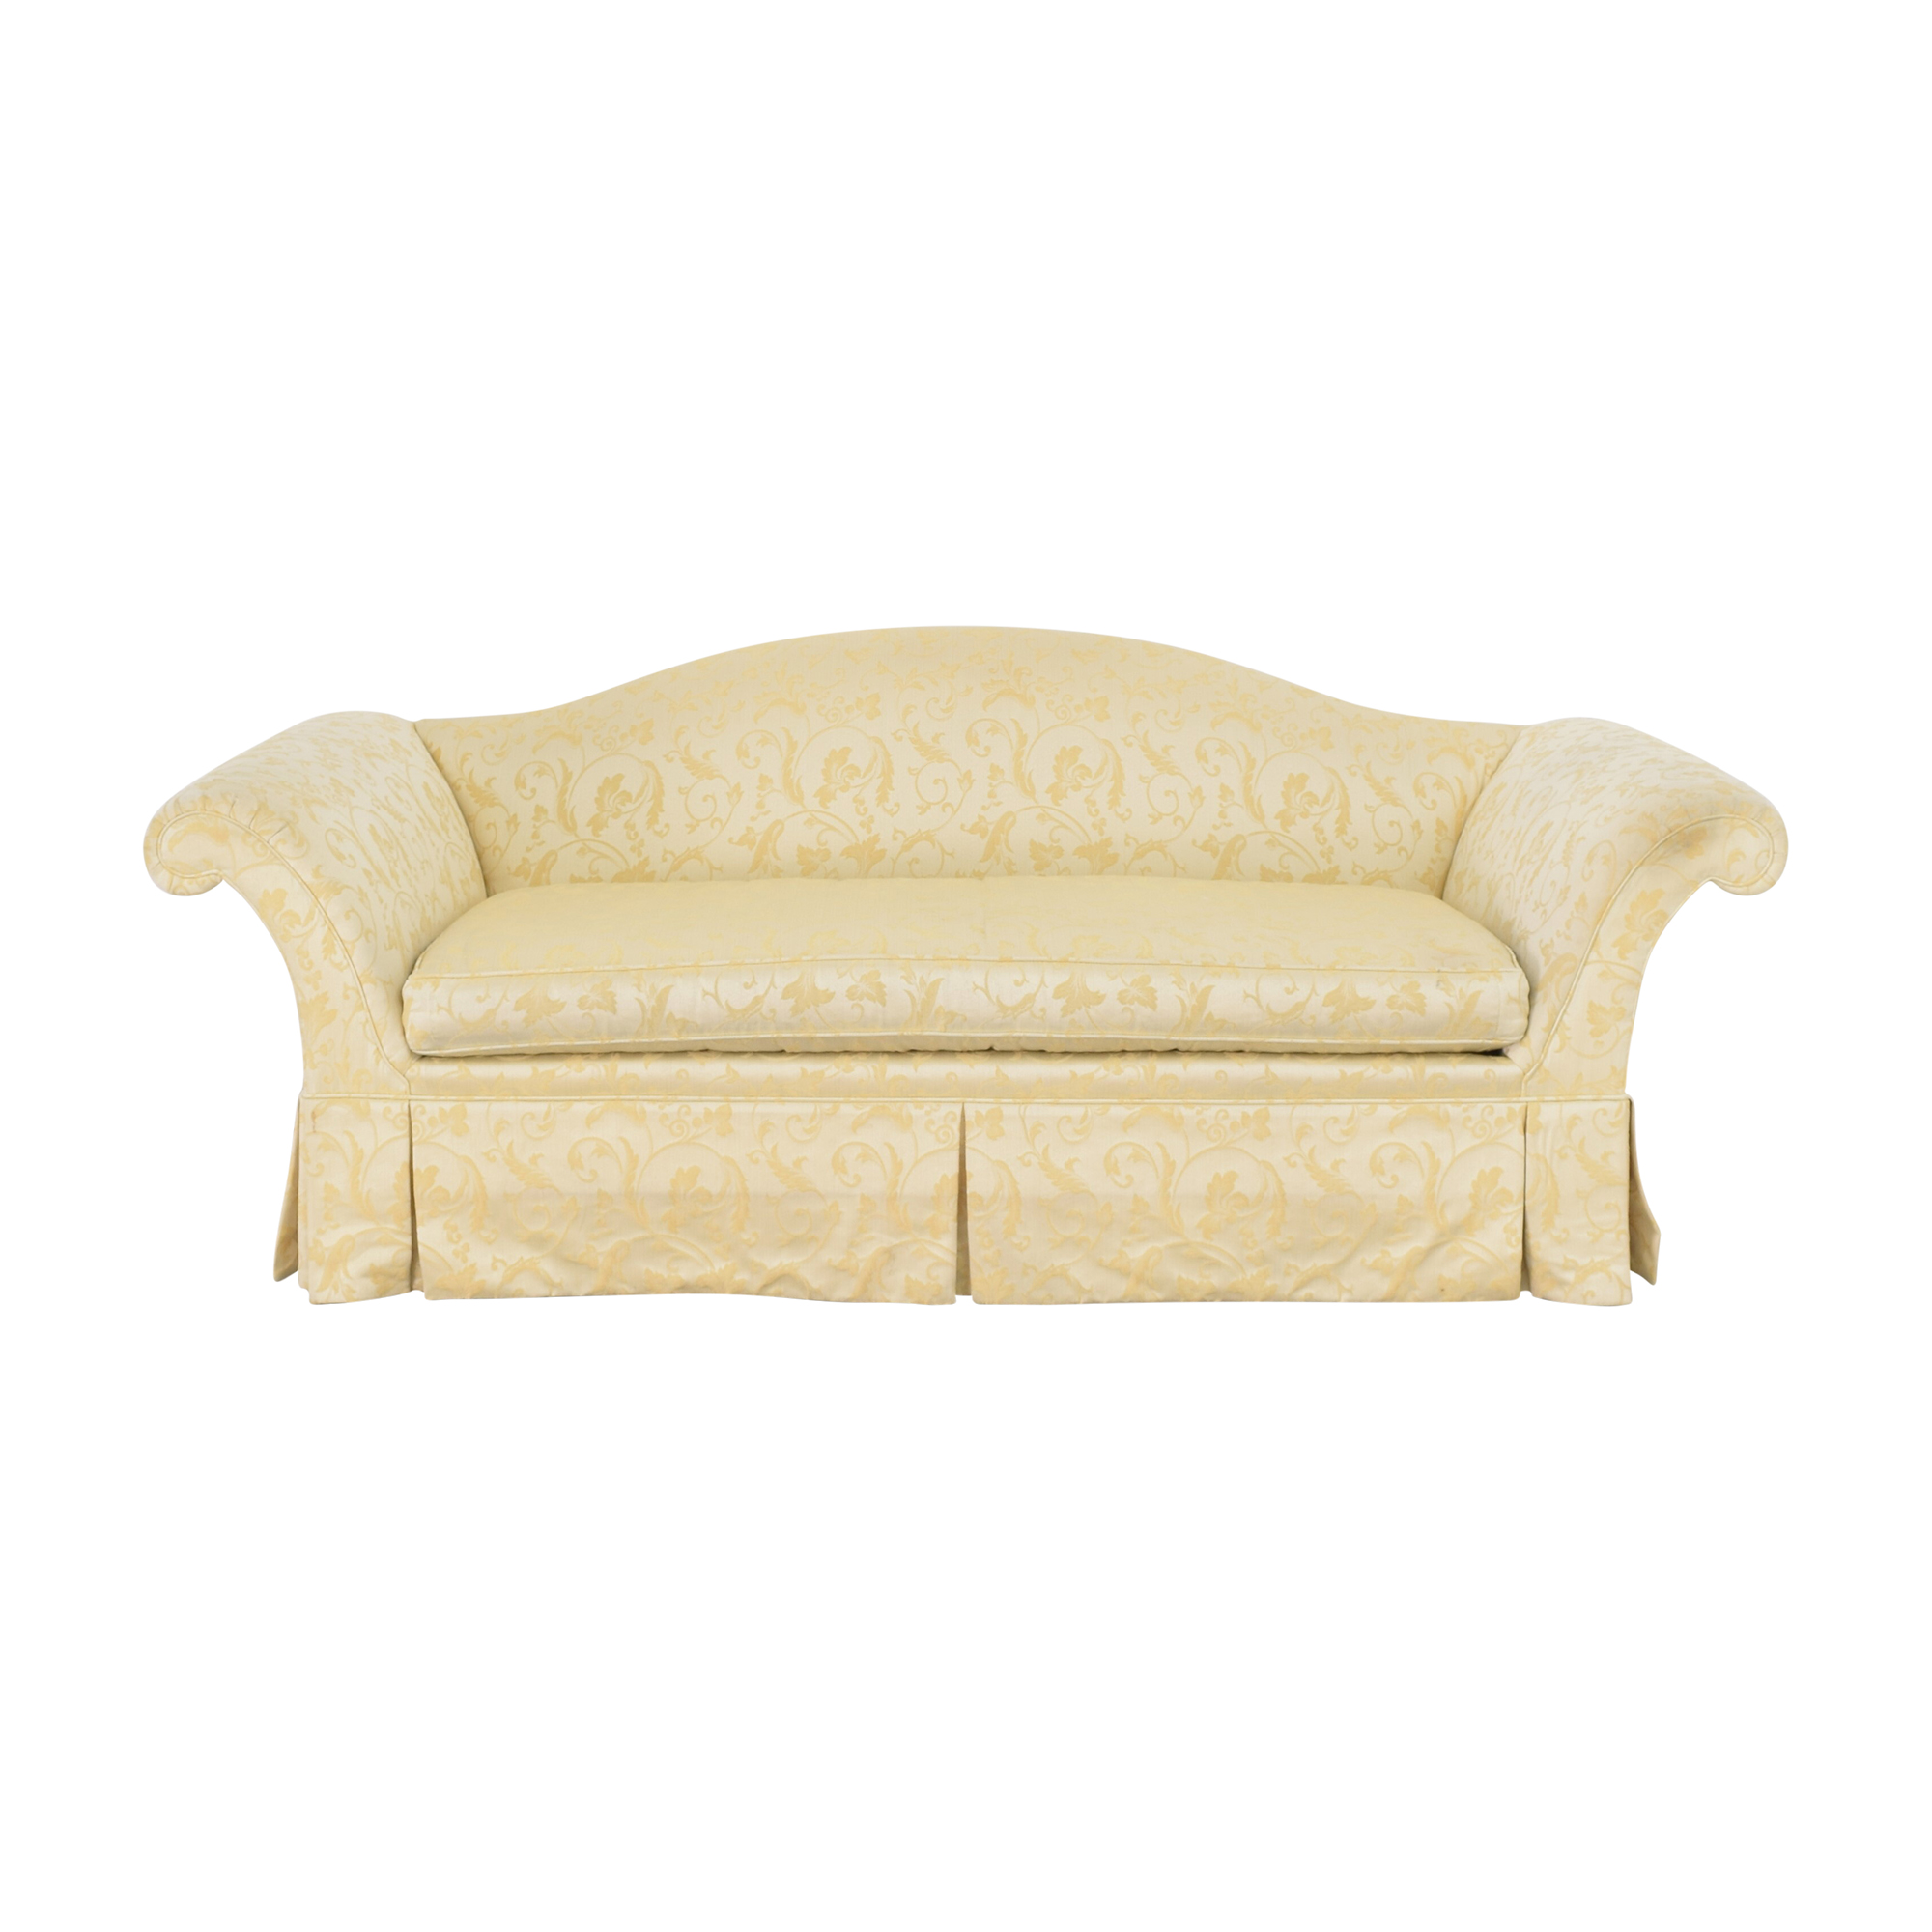 Kindel Kindel Skirted Camelback Sofa pa